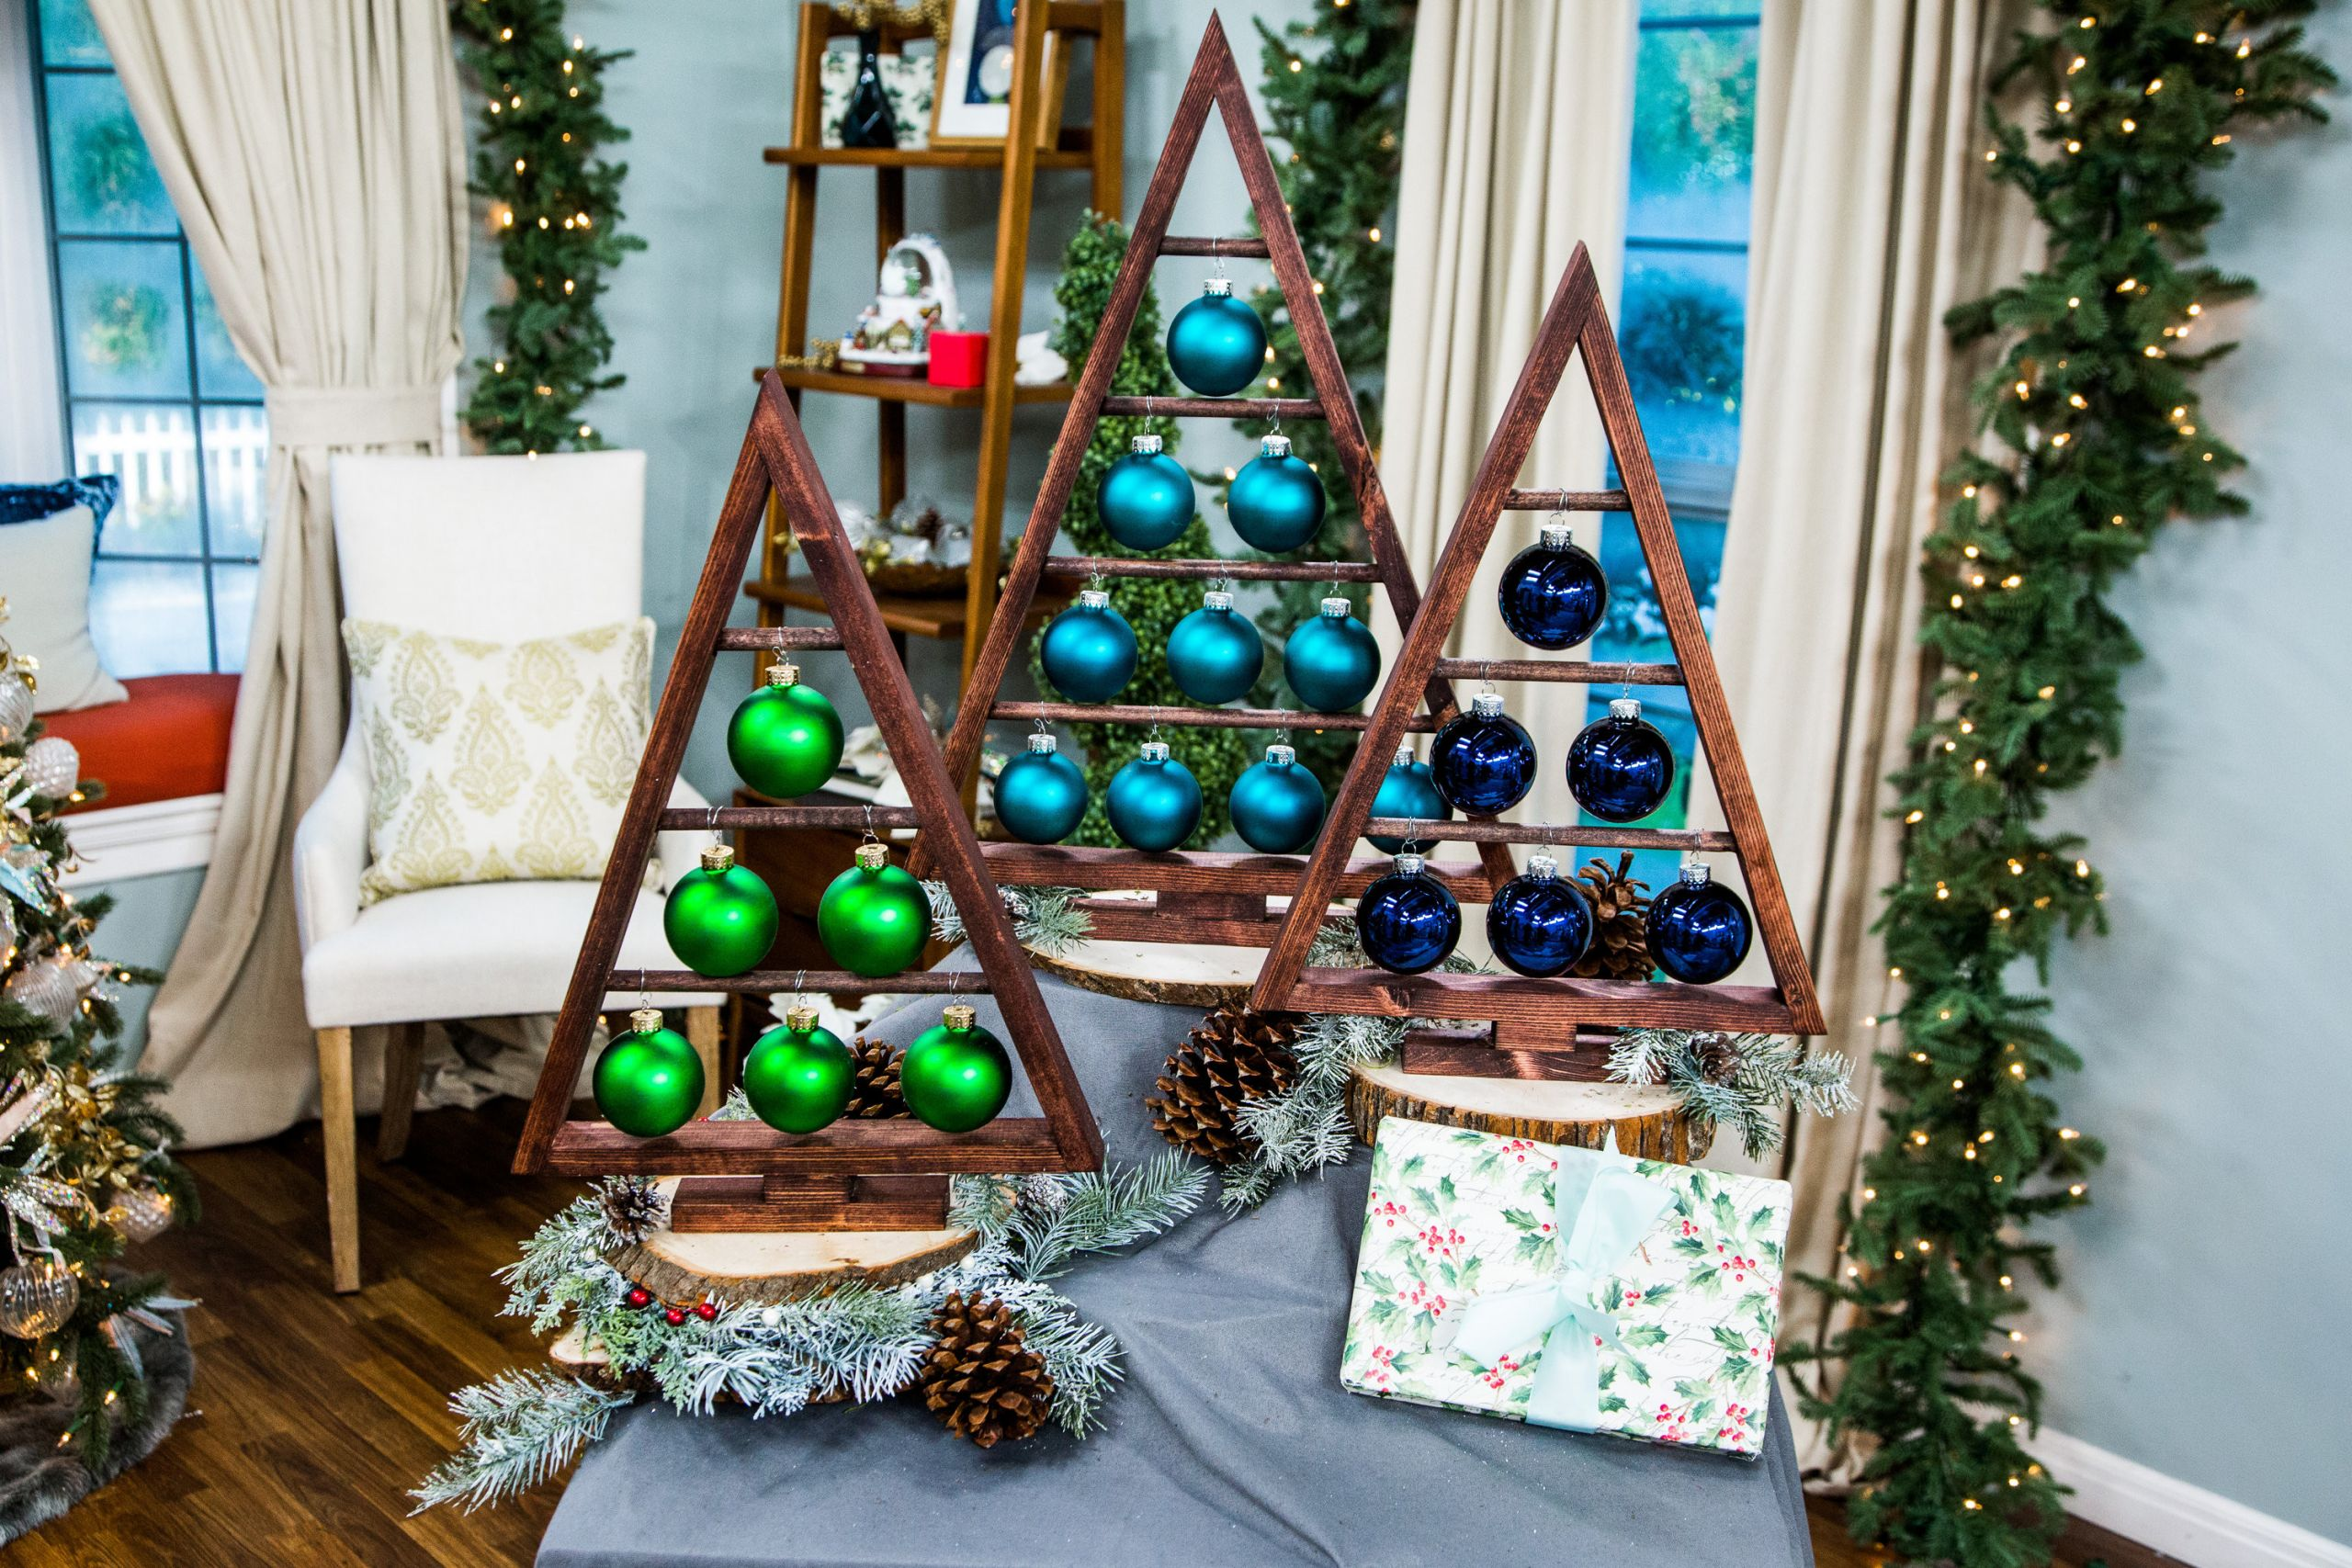 DIY Wooden Christmas Decorations  How To DIY Wooden Ornament Tree